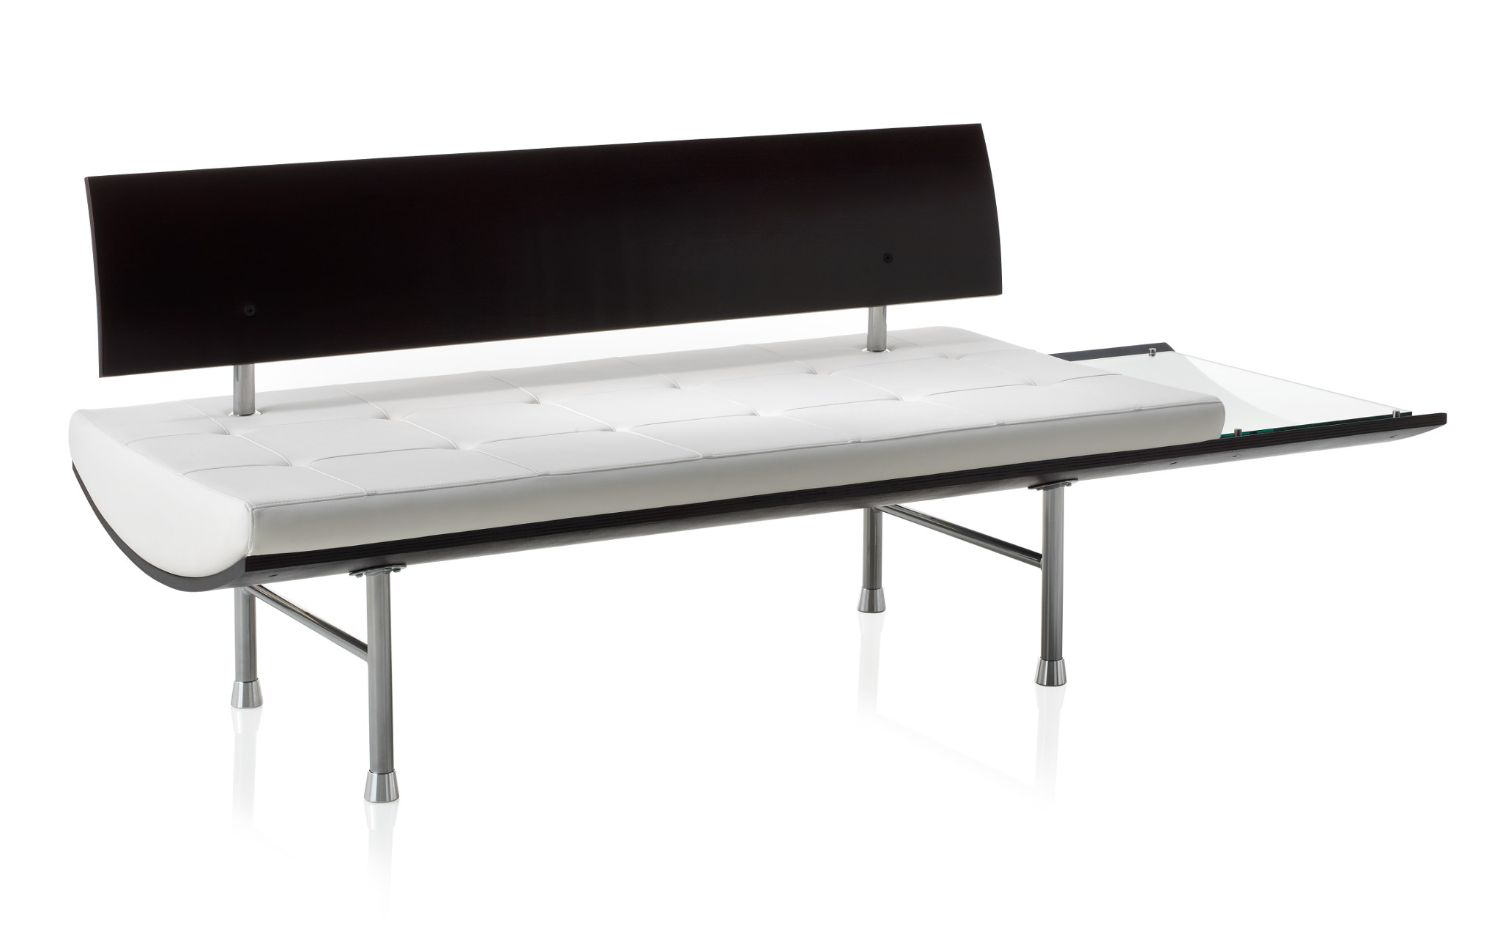 ki kurv tufted leather bench with wood back and glass side table